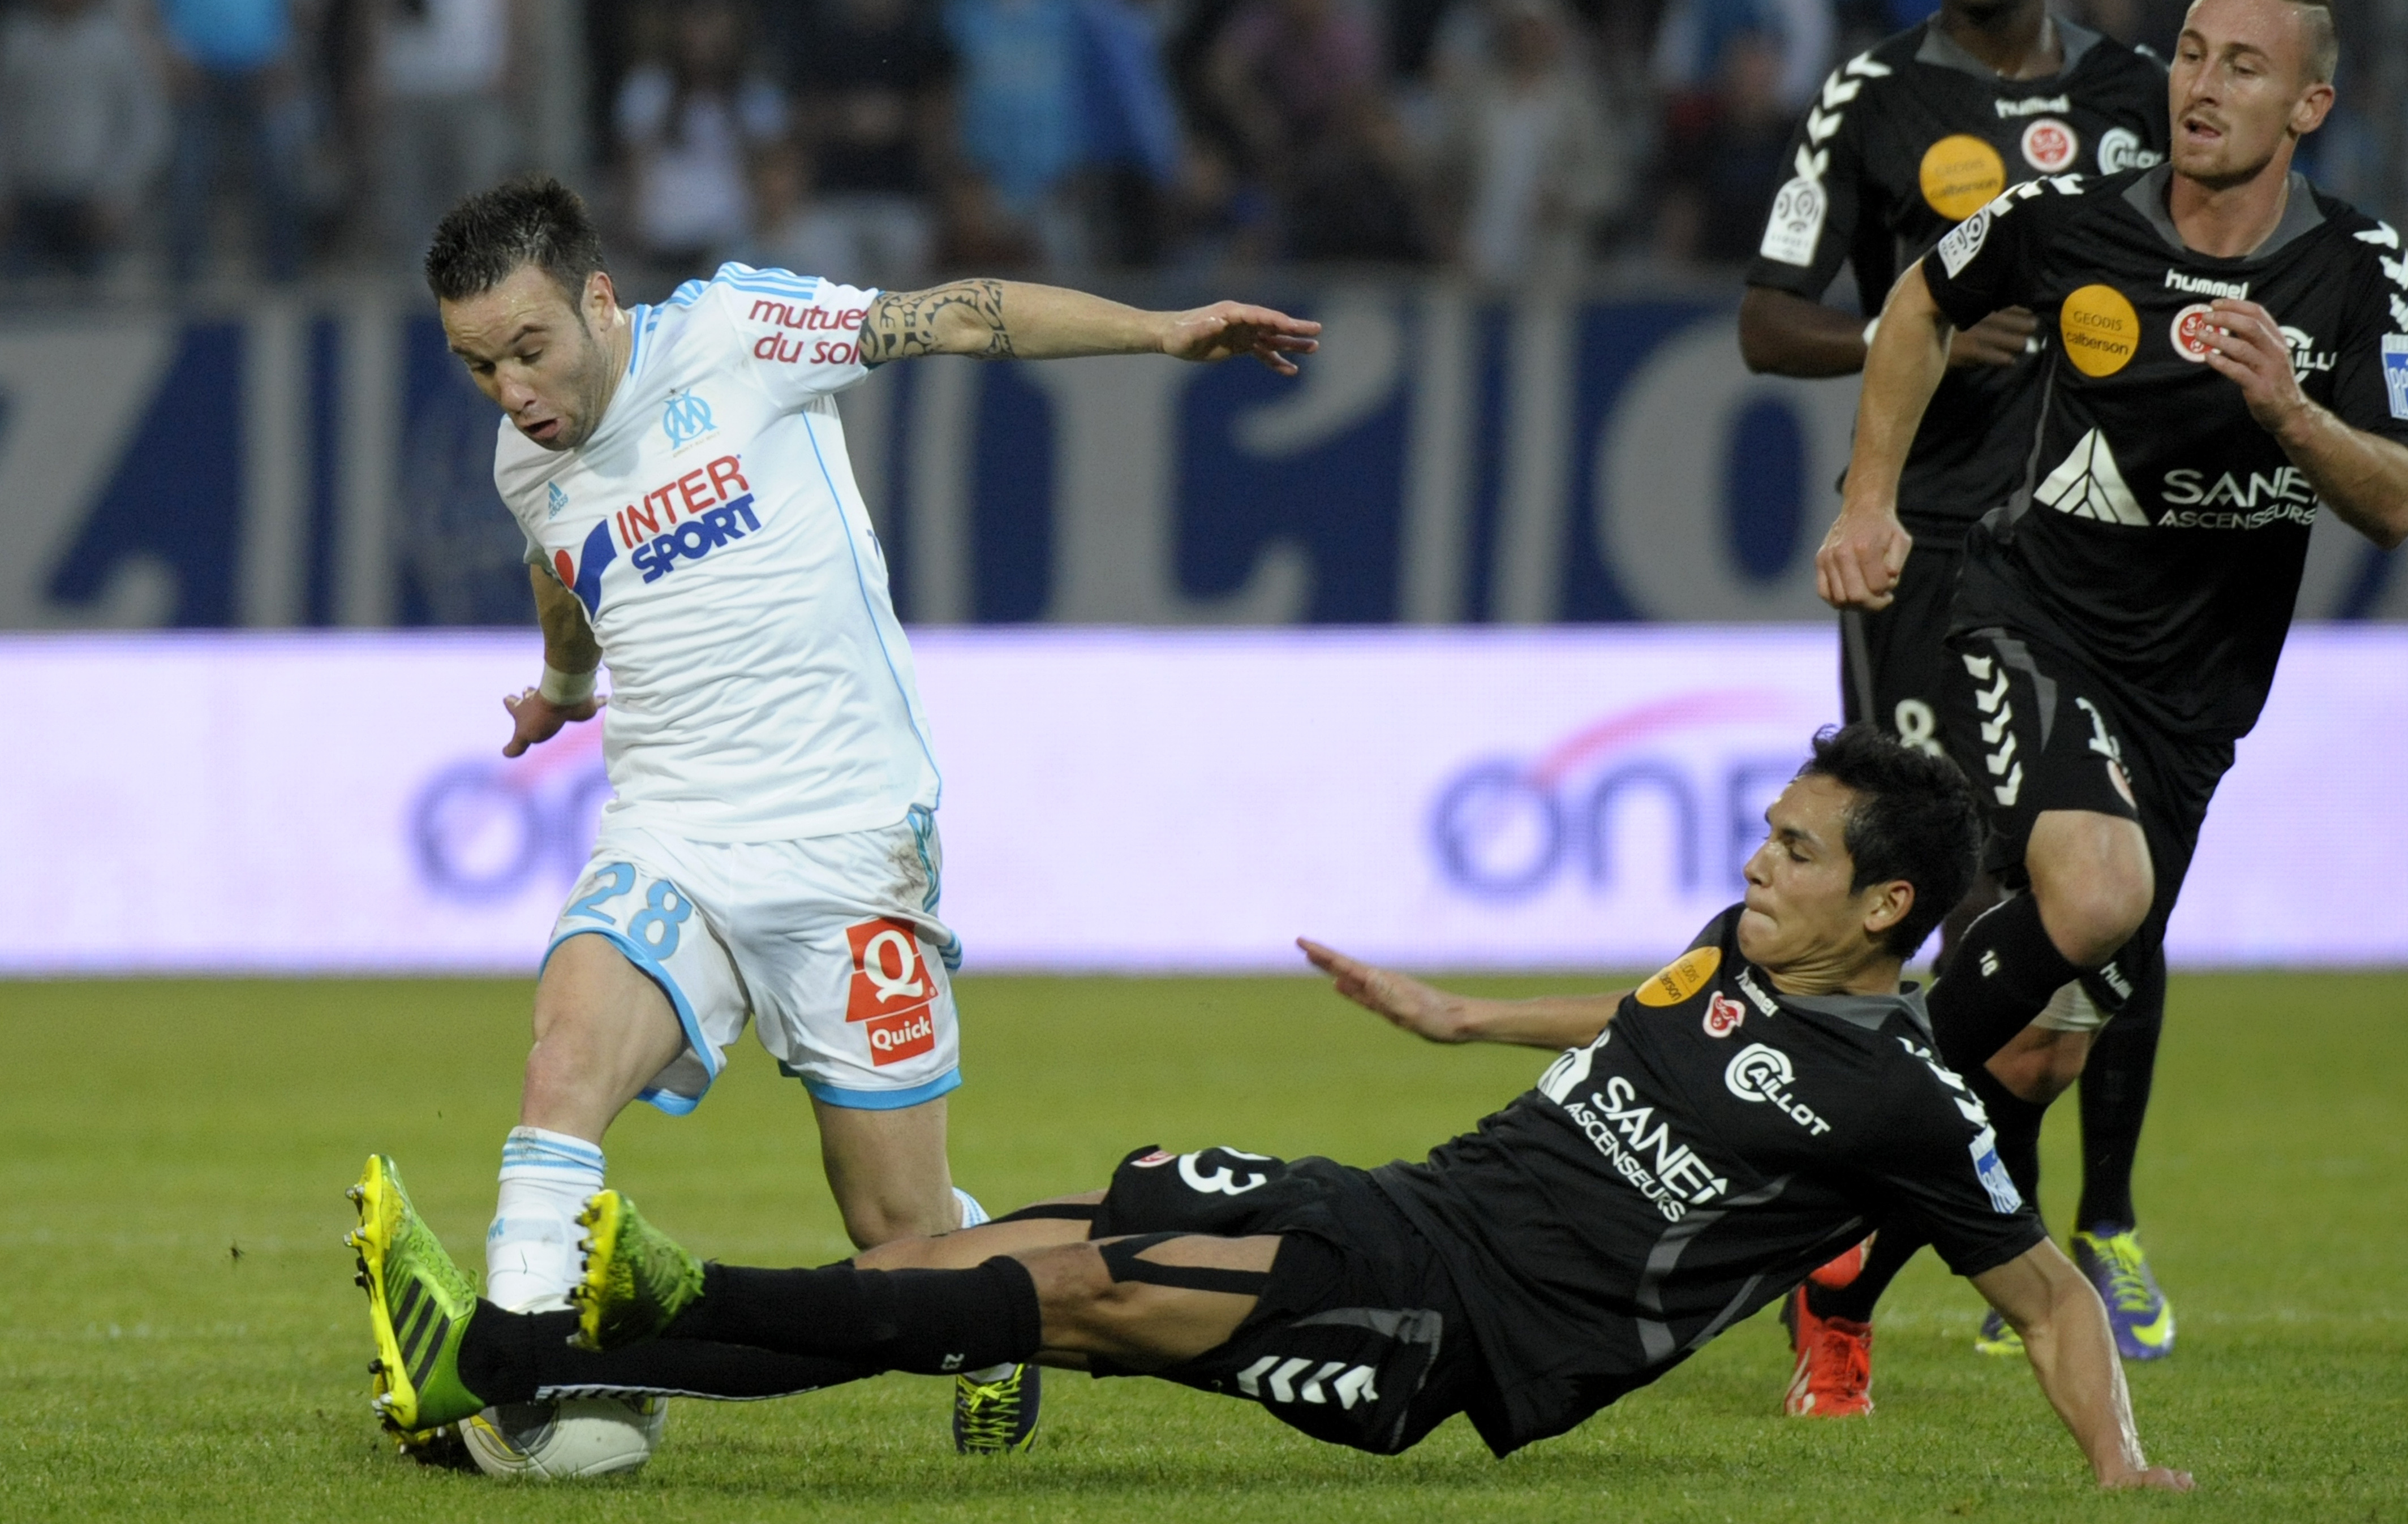 Football - Coupe de France - Quatre chocs entre clubs de Ligue 1